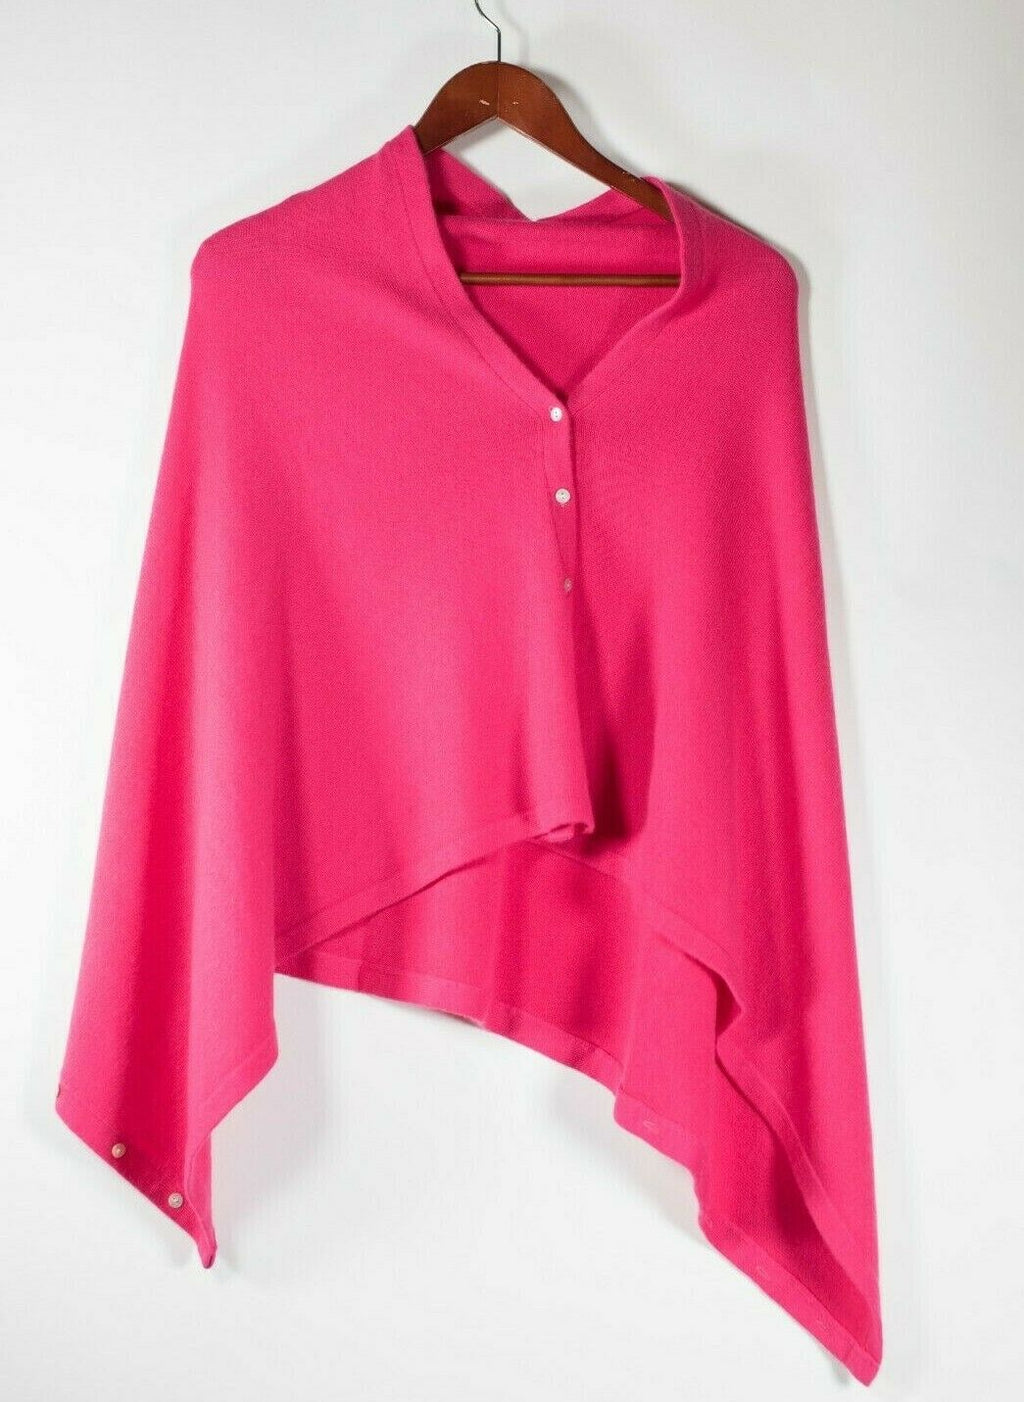 Women's One Size Hot Pink Cardigan Sweater Cashmere Sleeveless Buttons Top Shawl